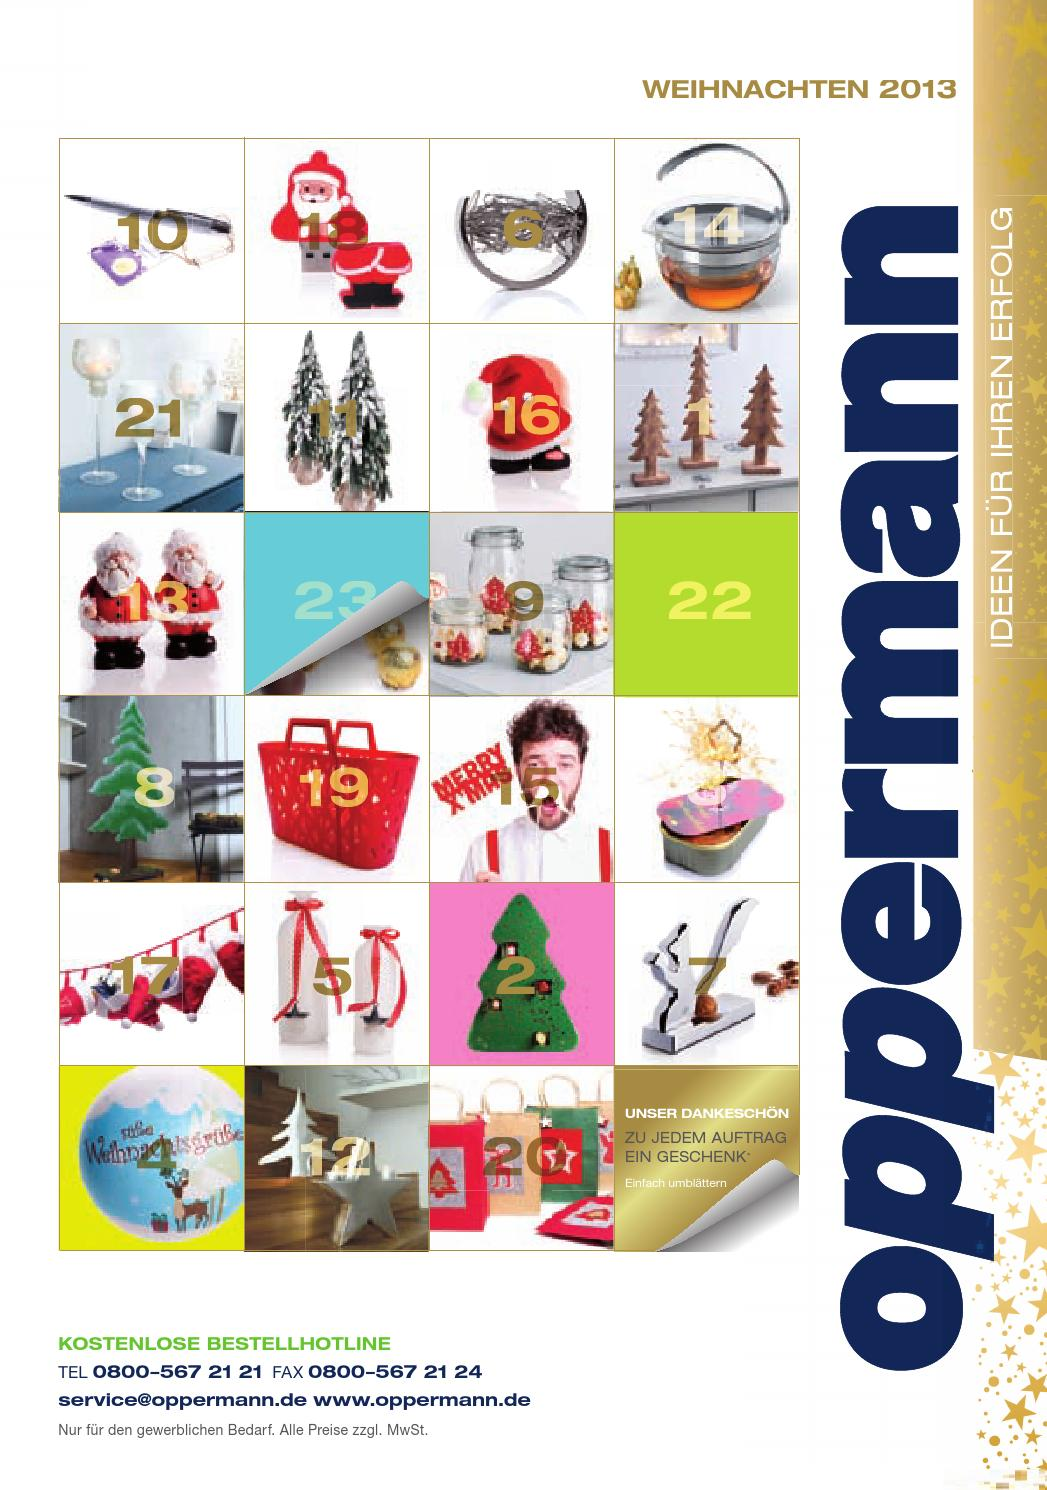 Oppermann Weihnachten 2013 By Hach Gmbh Co Kg Issuu